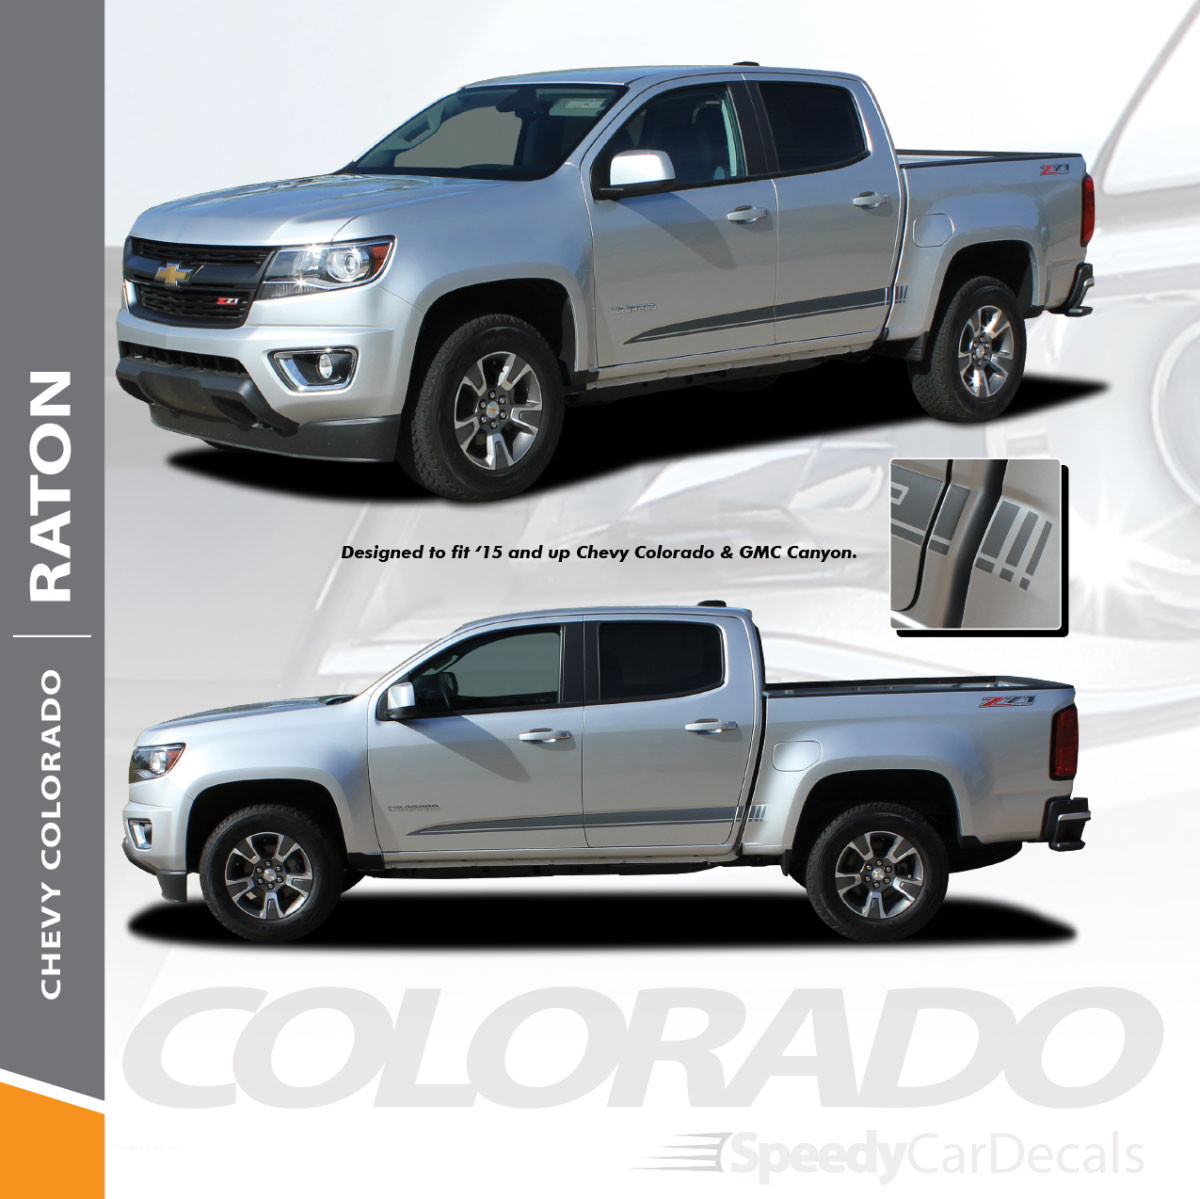 2018 Chevy Colorado Graphics RATON 3M 2015-2020